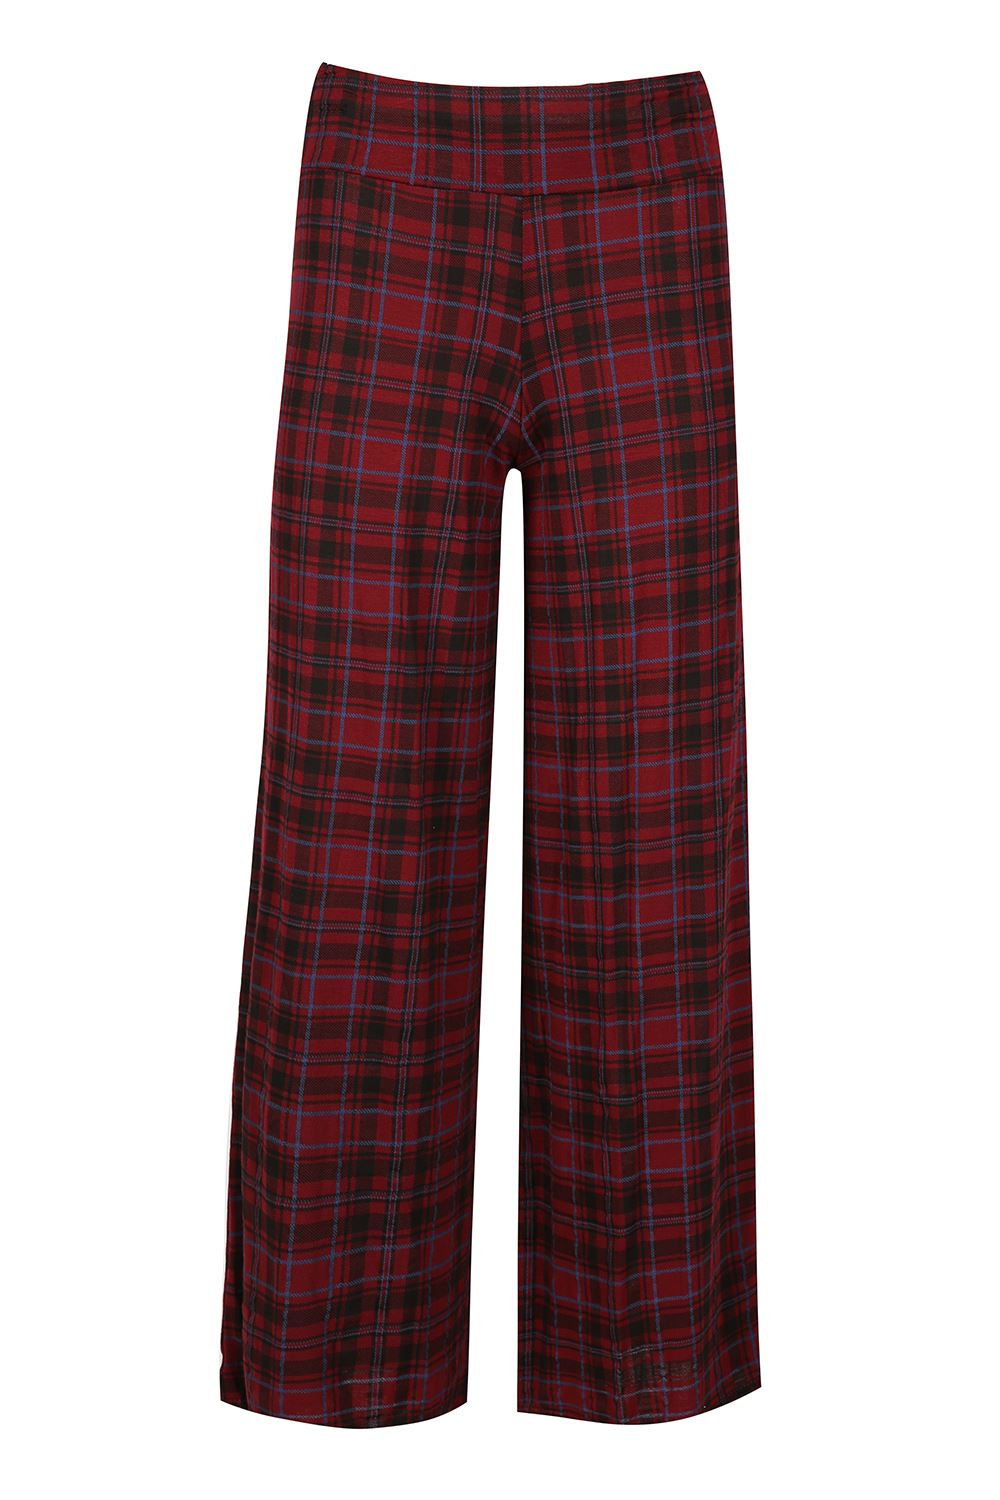 Shop Target for Flare Pants you will love at great low prices. Spend $35+ or use your REDcard & get free 2-day shipping on most items or same-day pick-up in store.